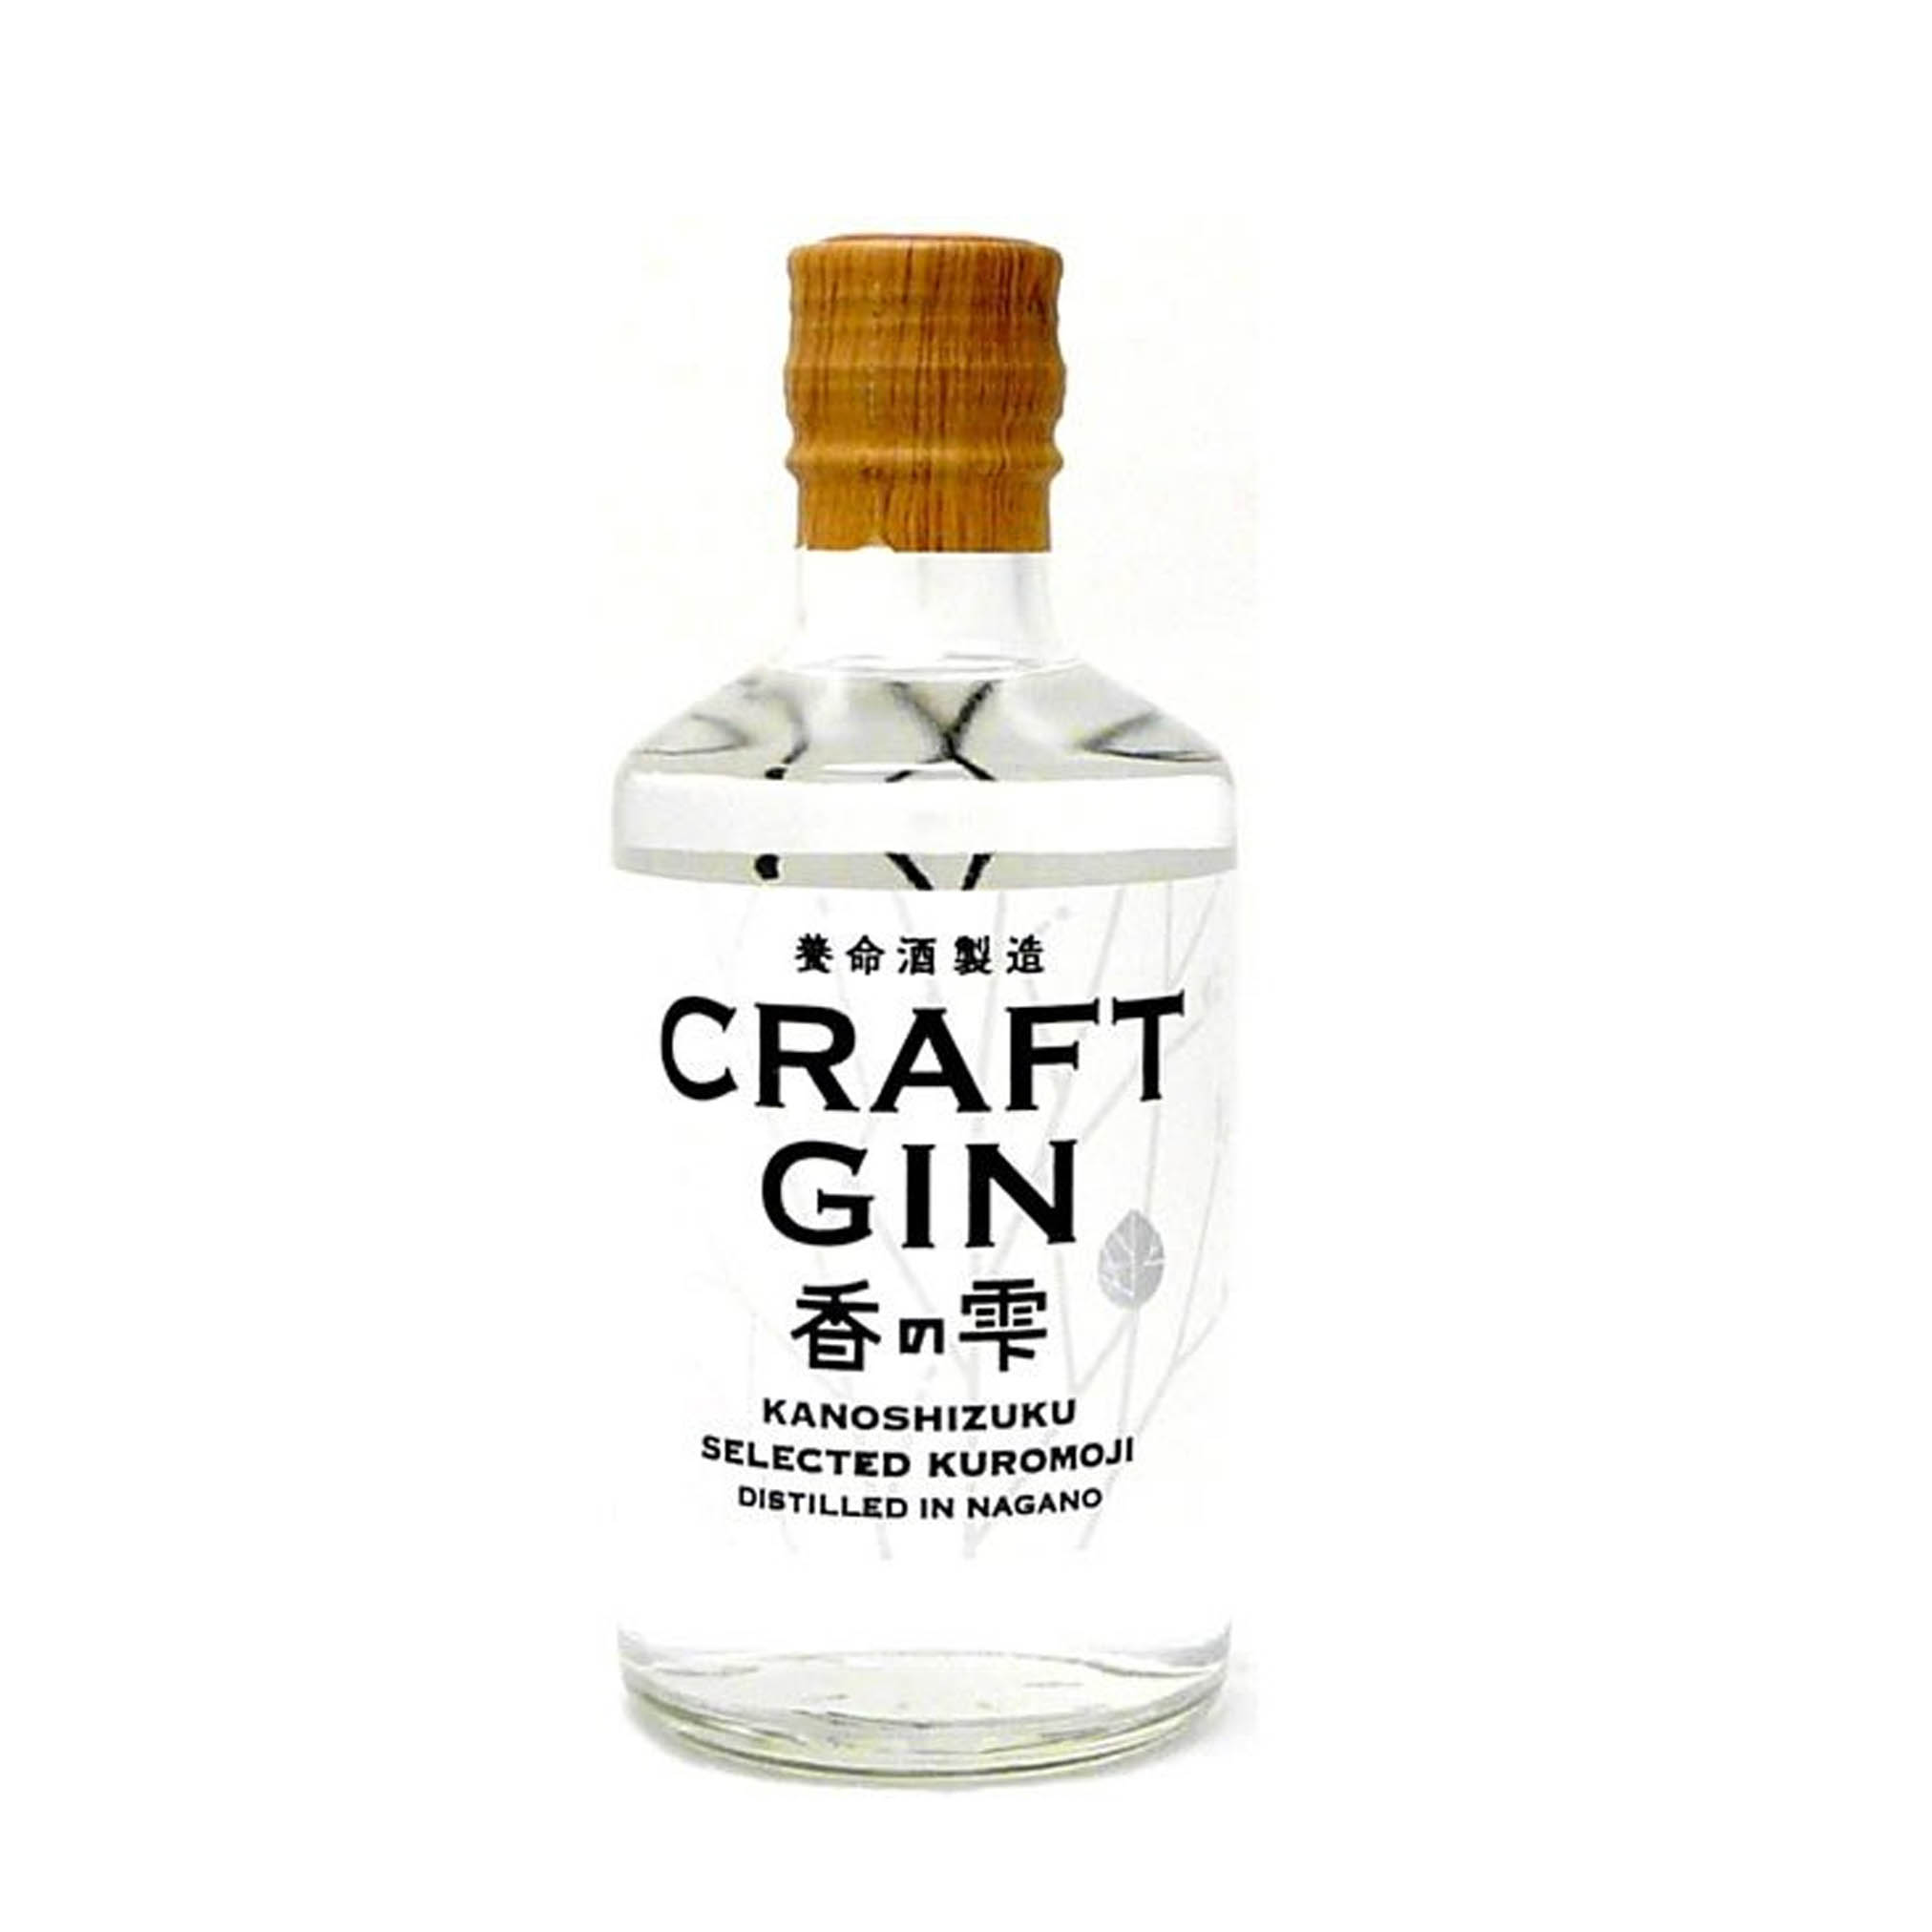 Craft Gin Kanoshizuku 37% Spirit 300Ml (By Yomeishu)